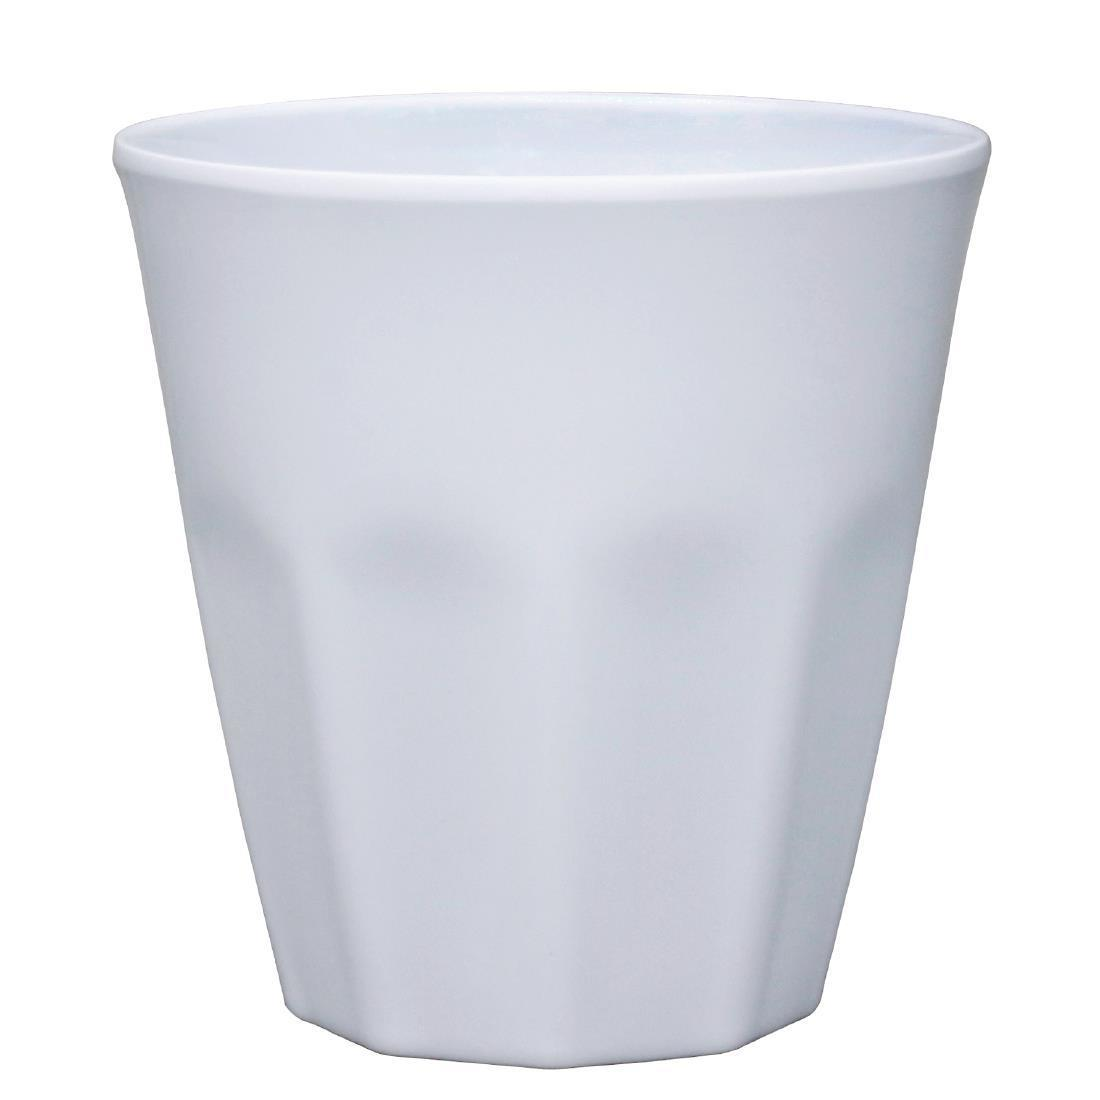 Kristallon Melamine Plastic Tumbler White 290ml - Case 6 - CR346